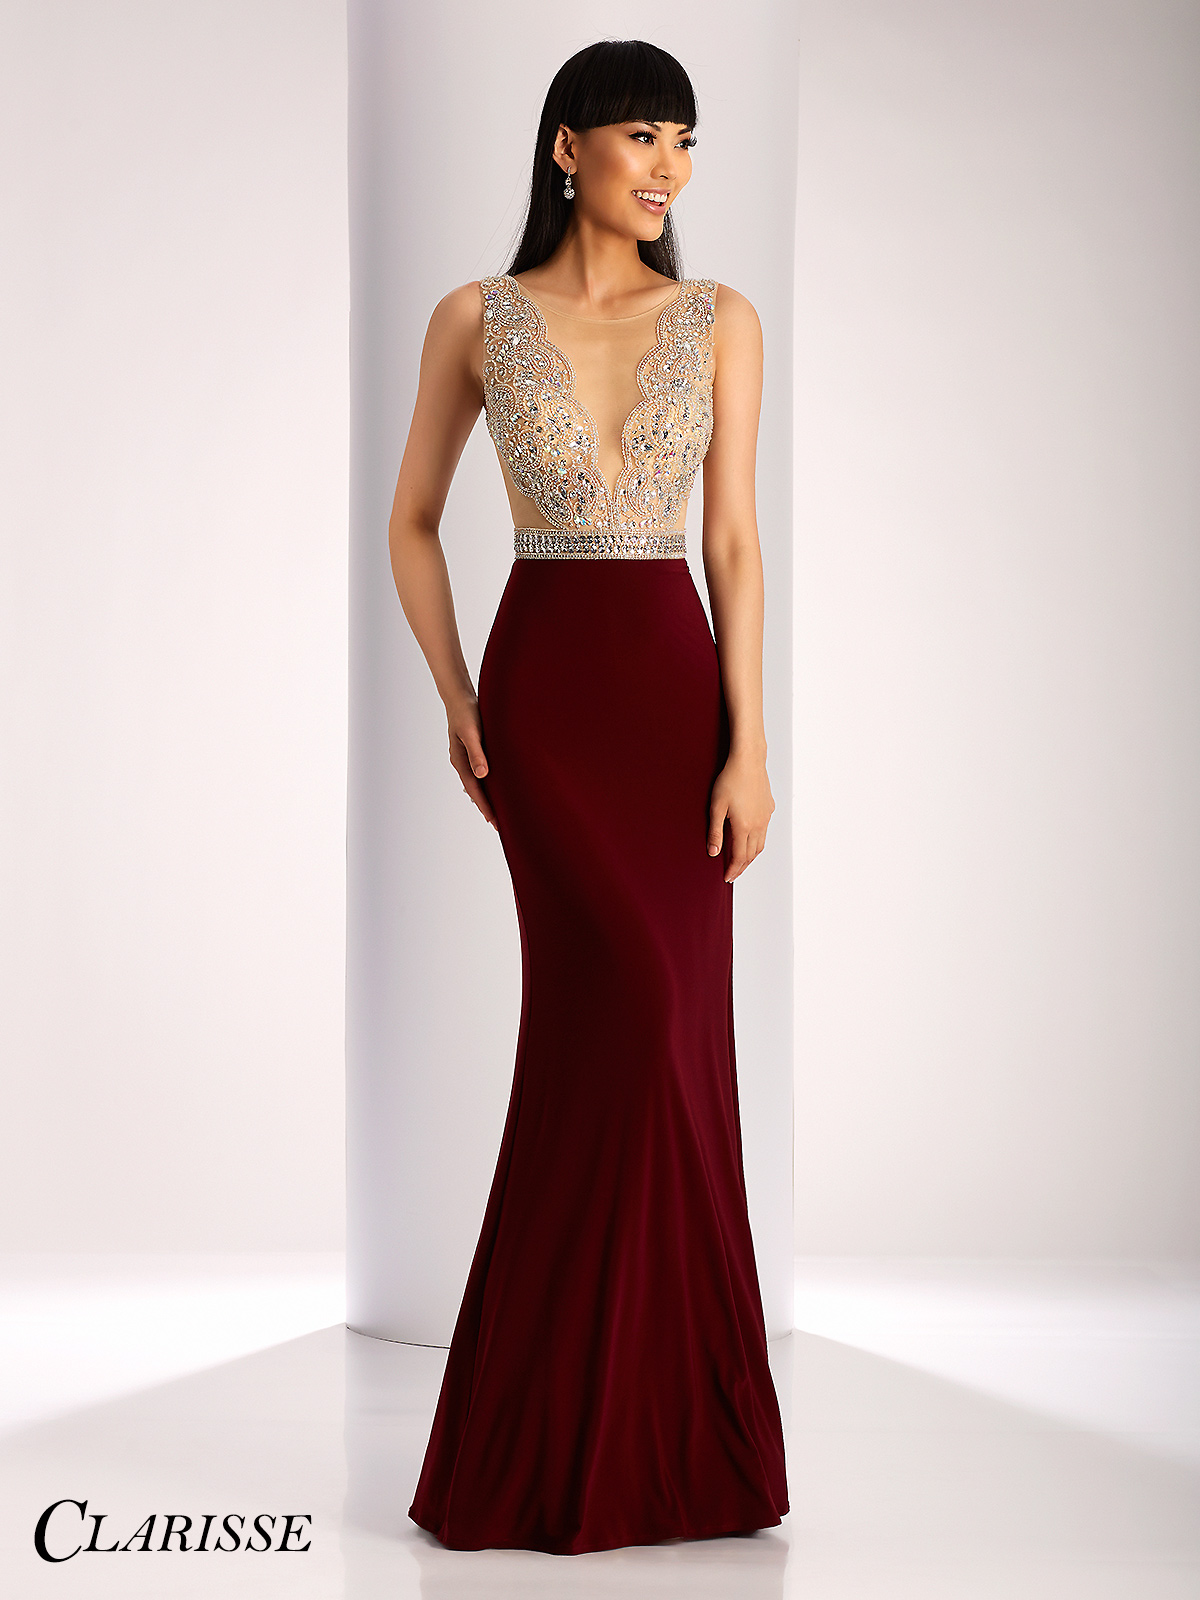 Clarisse Prom Dress 3080 | Promgirl.net